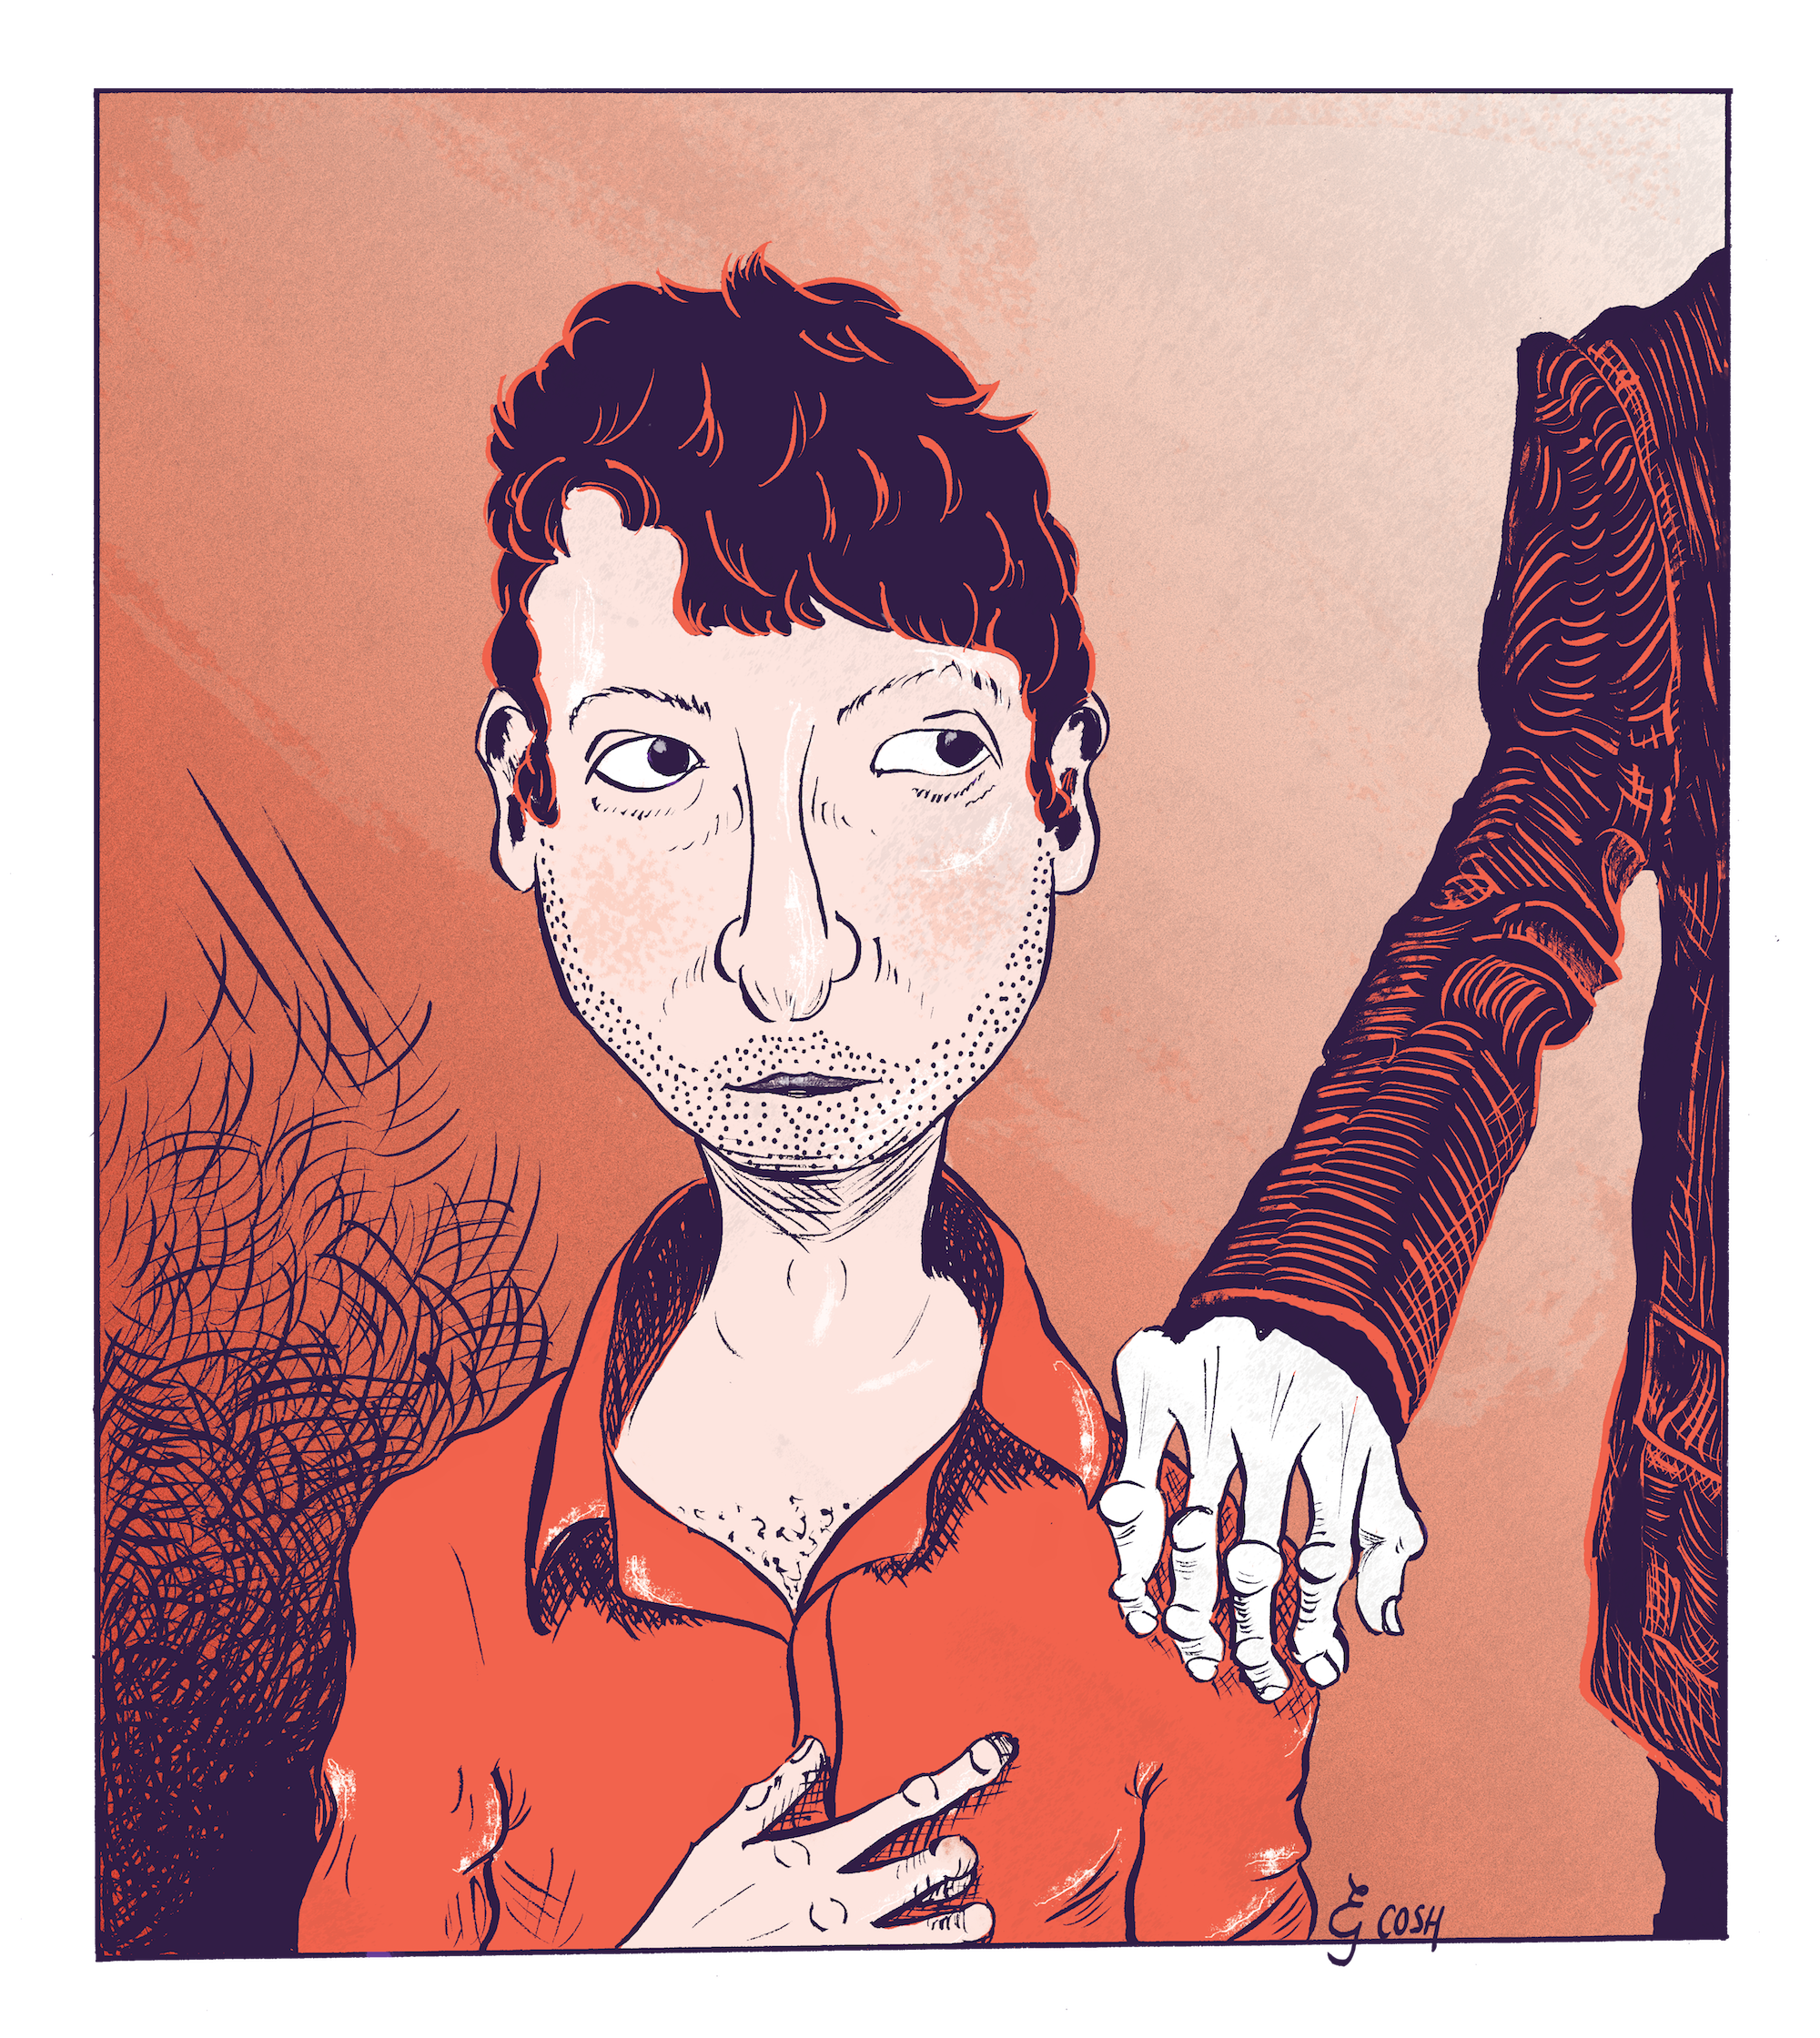 Adam Ehrlich Sachs, Pocket Interview No. 1 - Adam Ehrlich Sachs lives in Pittsburgh, Pennsylvania. His debut collection, Inherited Disorders: Stories, Parables, and Problems,has been described by The Rumpus as